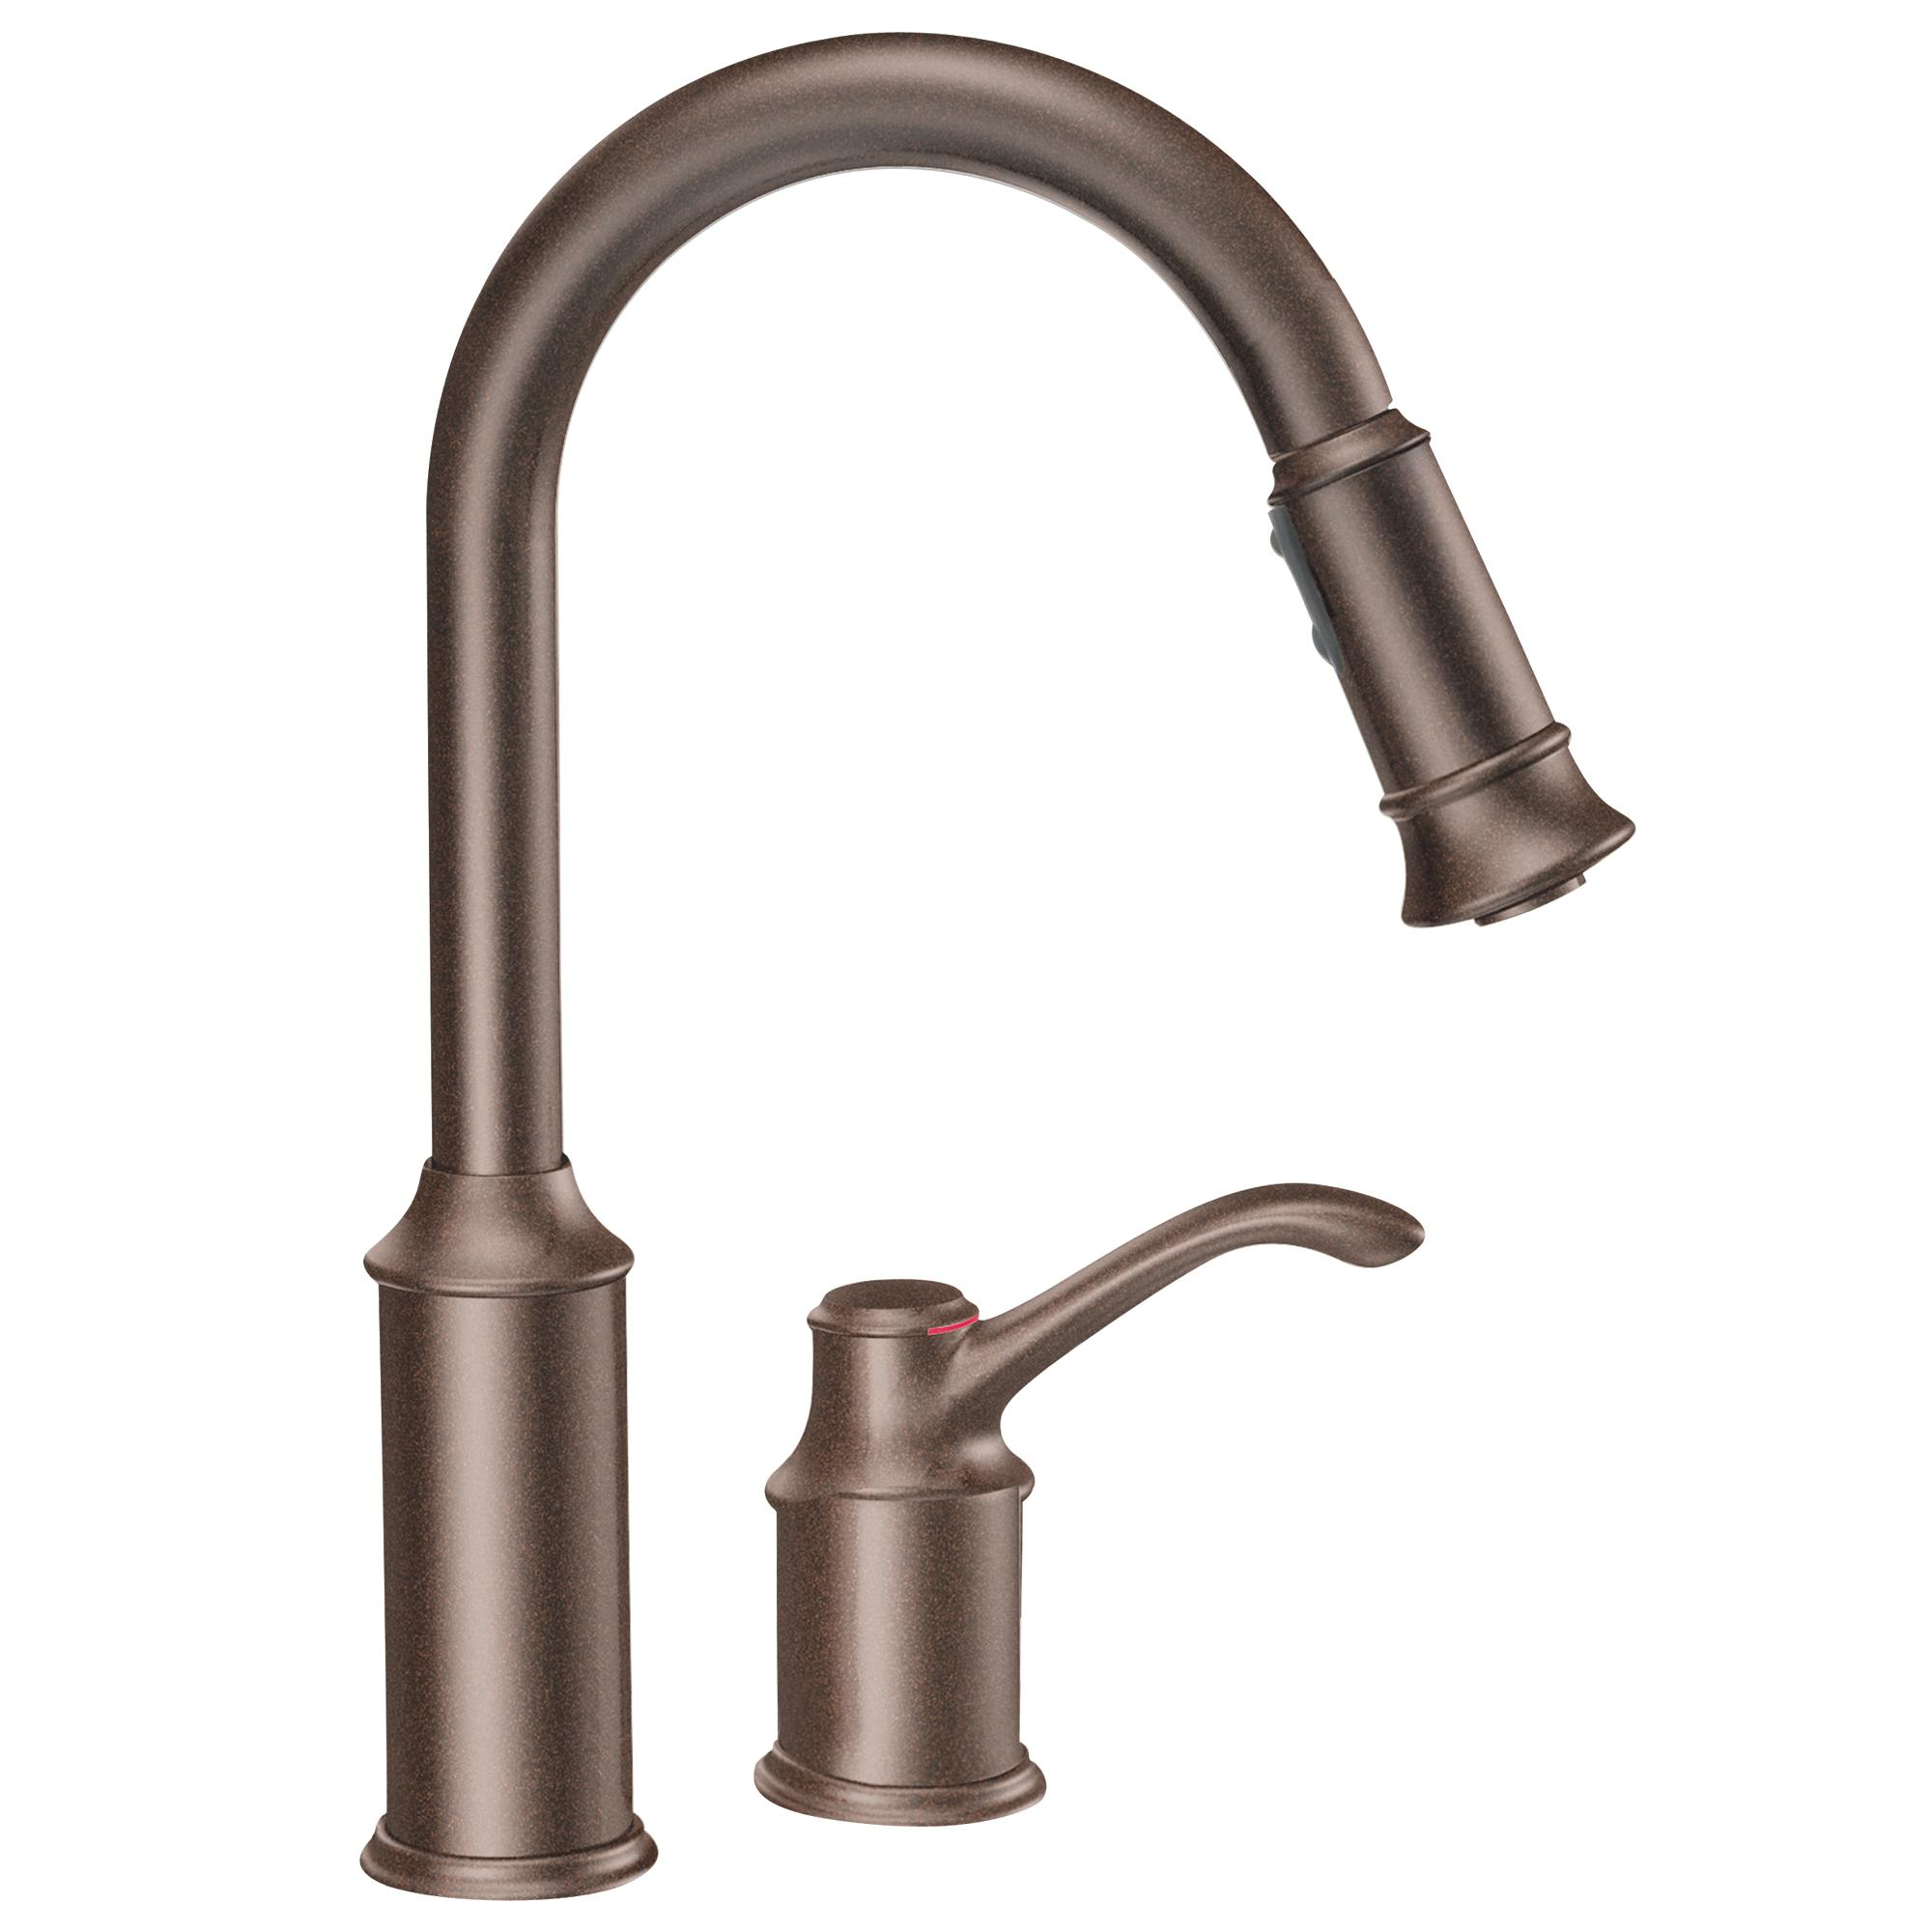 Moen kitchen faucet high flow rate - From The Manufacturer